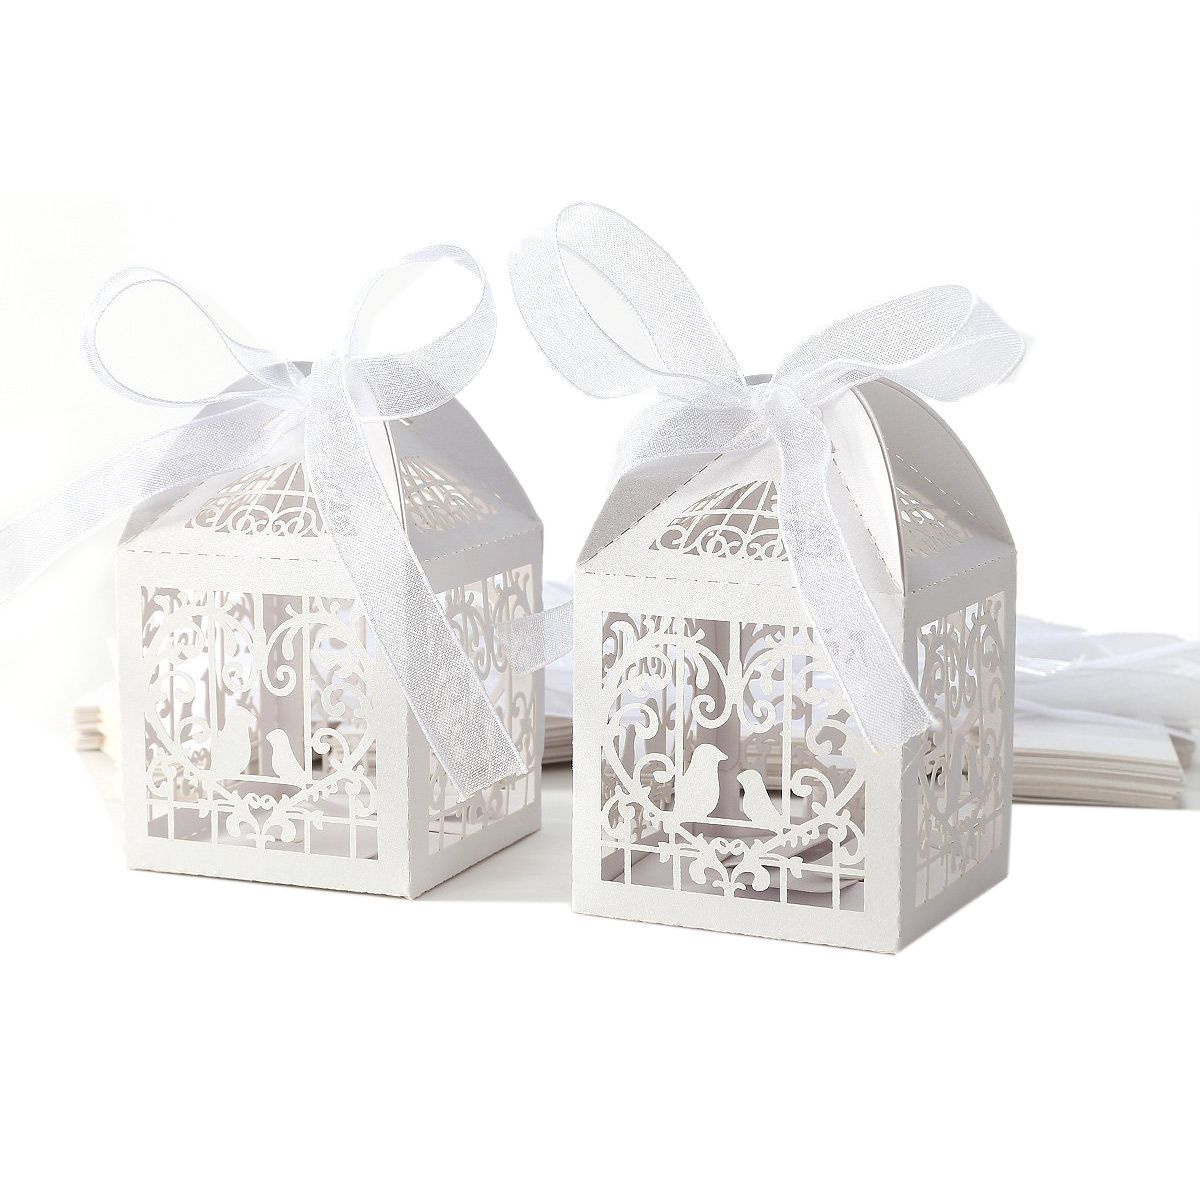 UESH 25pcs Box dragees Candy Heart White Birds for Wedding